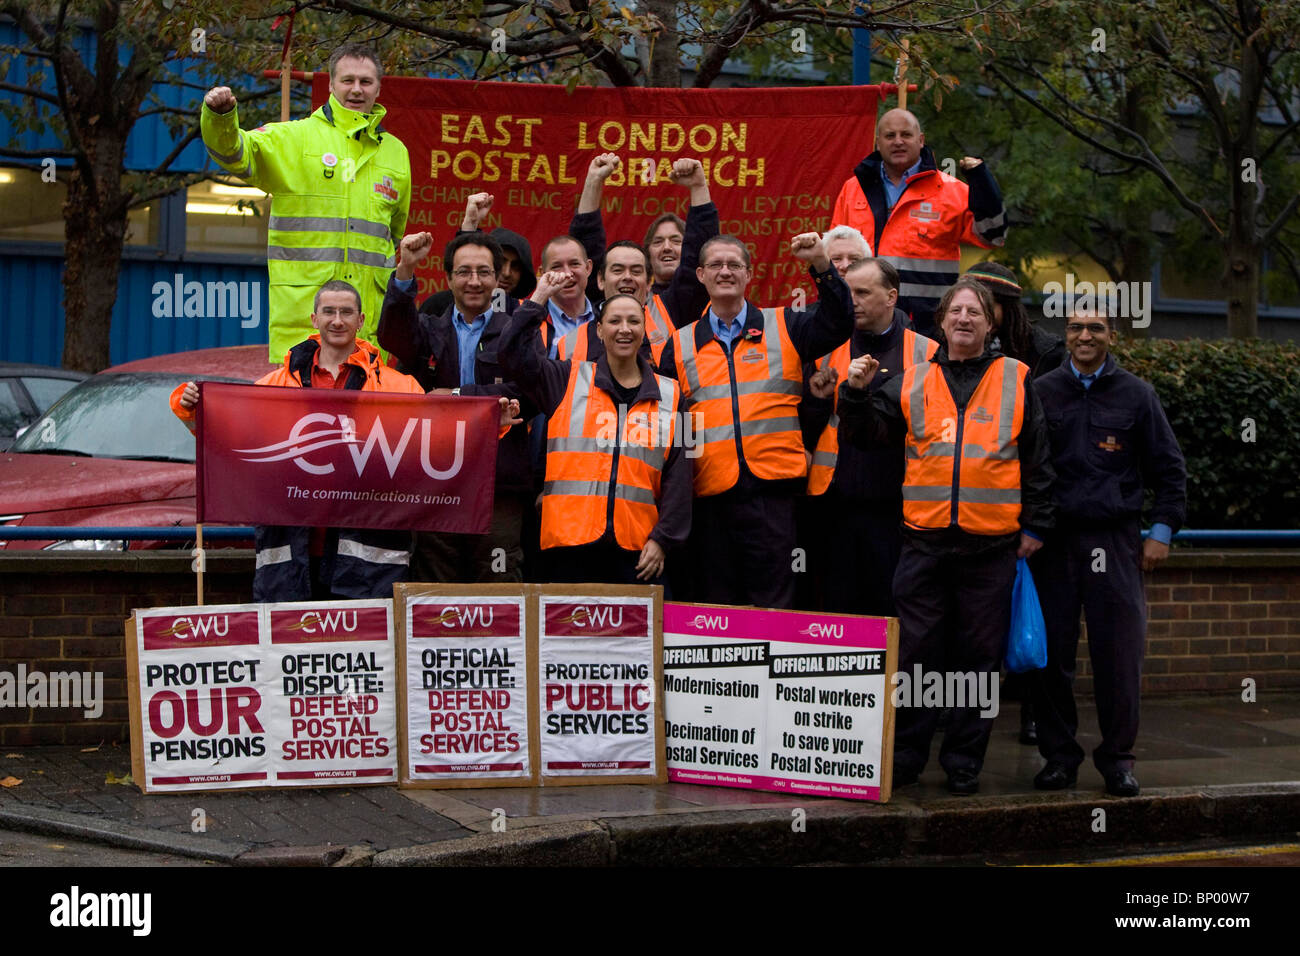 Striking Postal Workers picket outside Bow Delivery Office in East London. Picture by James Boardman - Stock Image